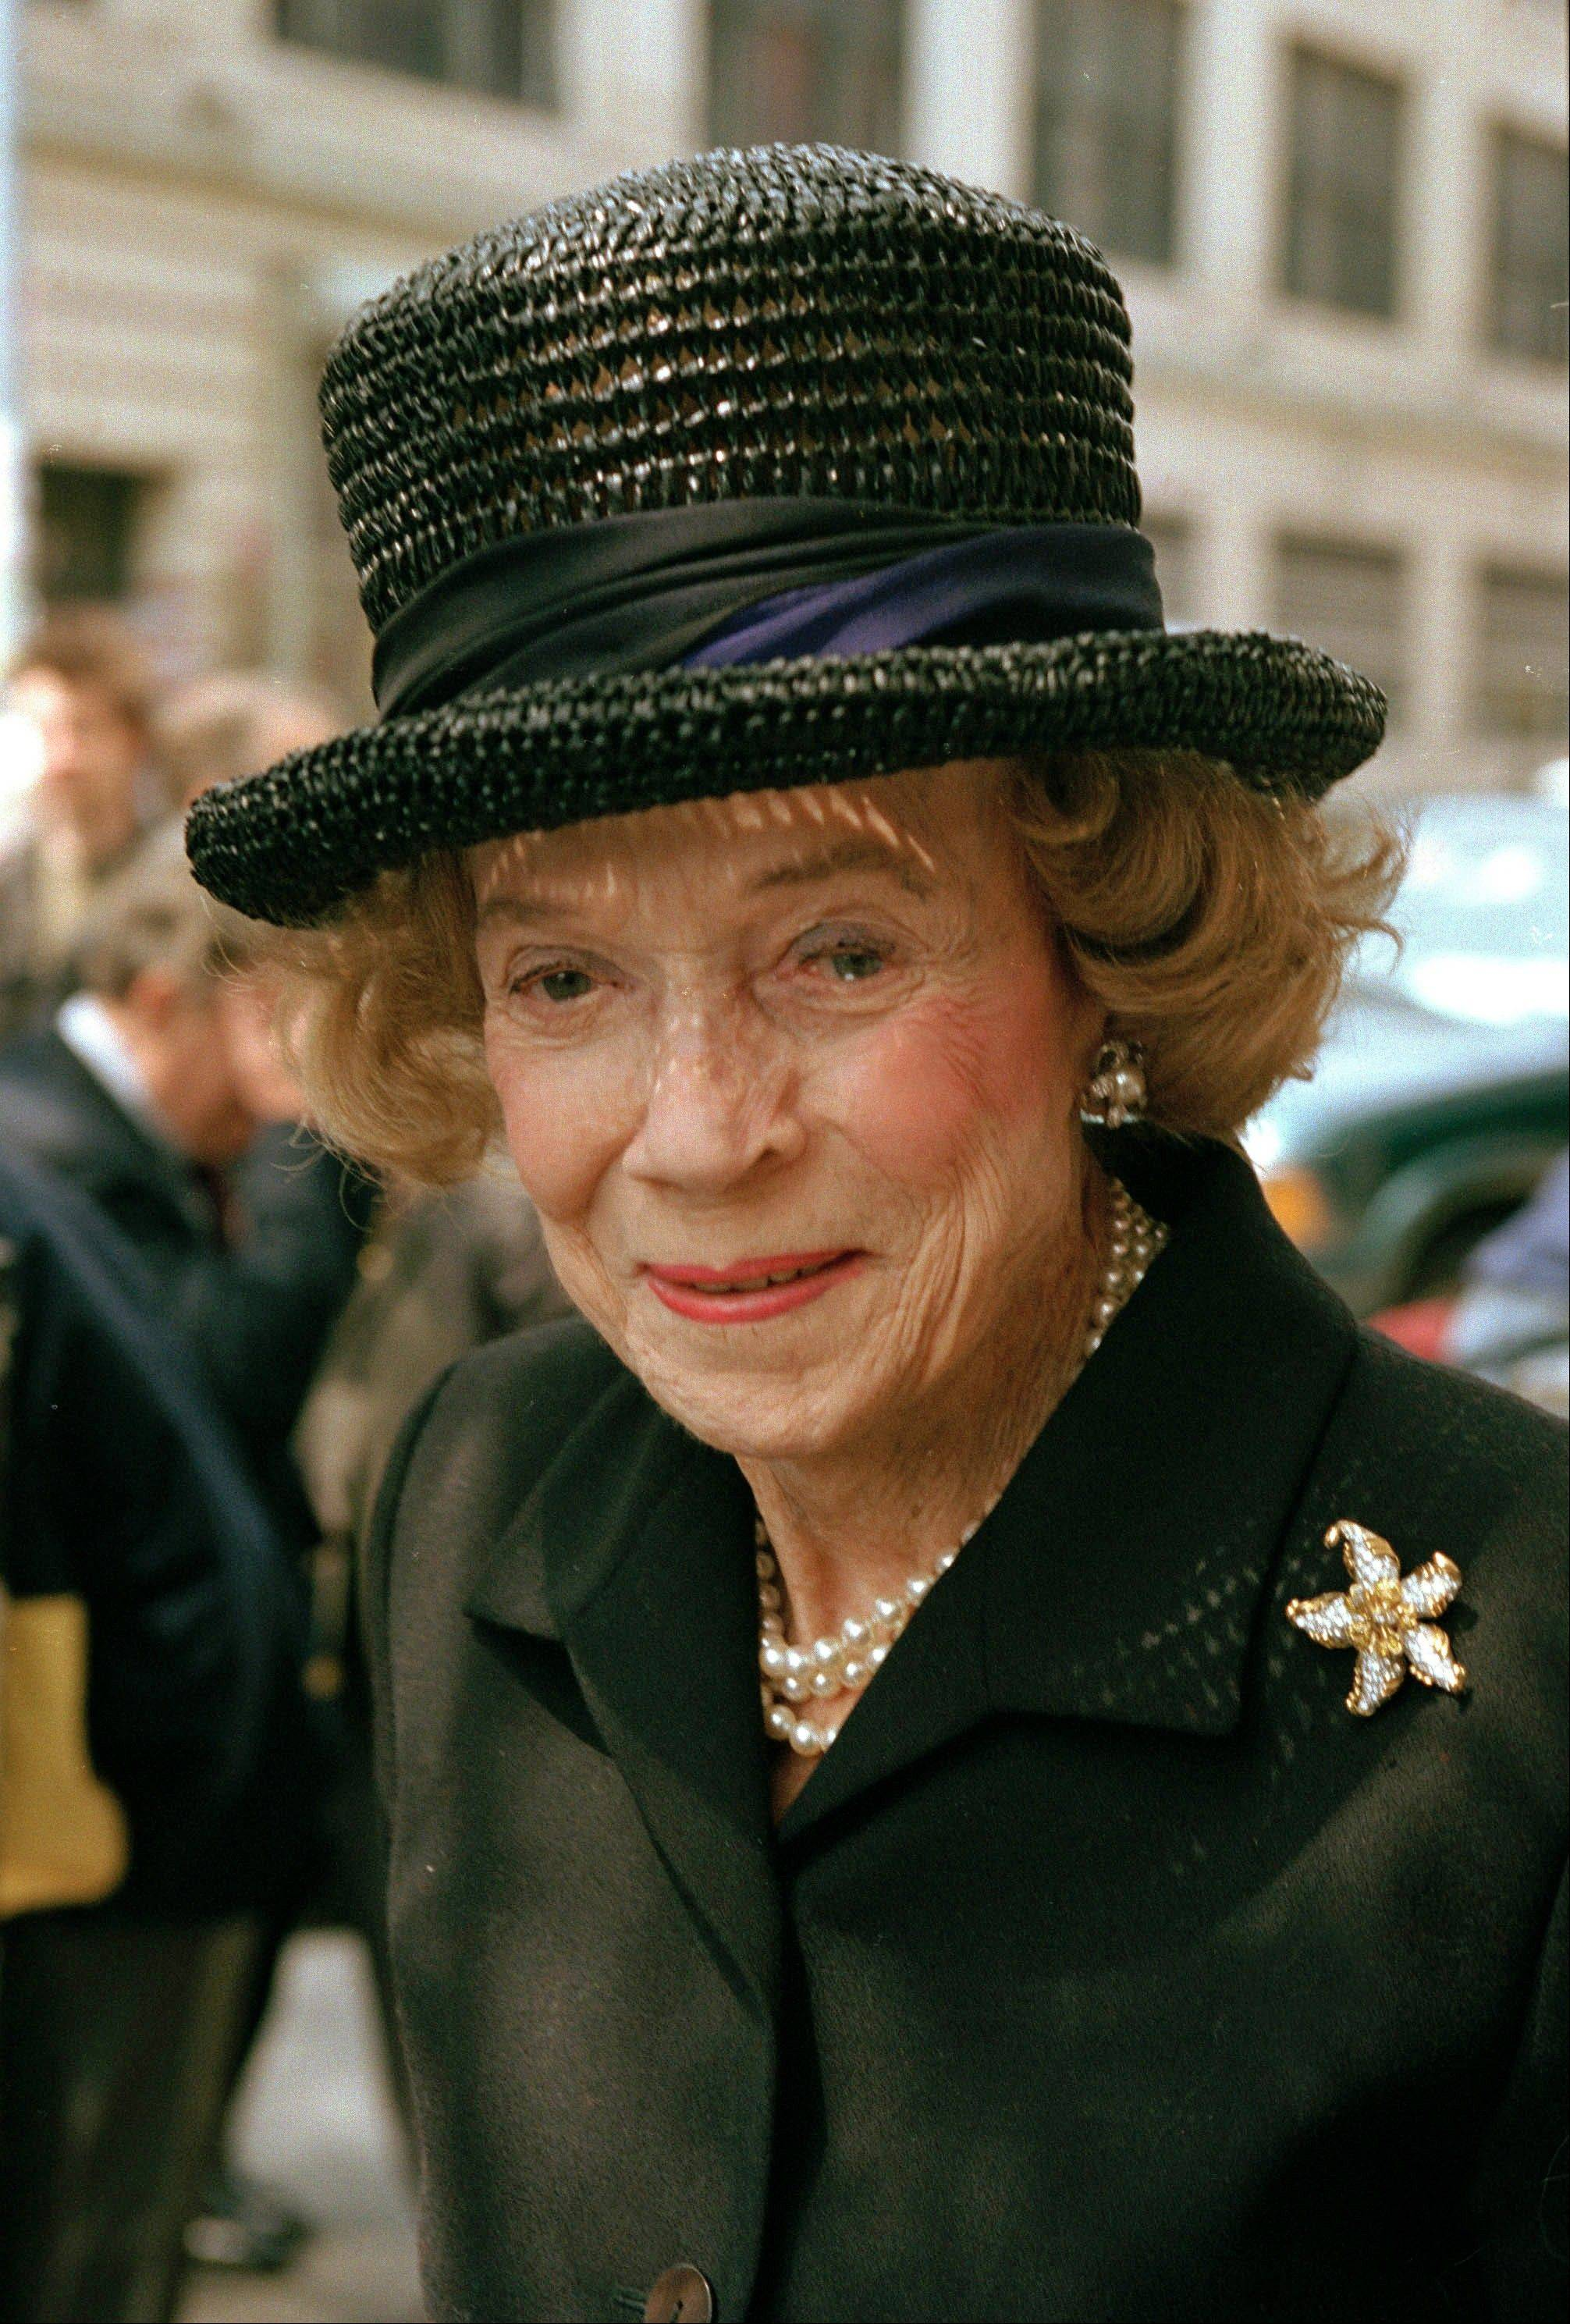 Brooke Astor's son and lawyer were convicted in 2009 of exploiting her failing mind to steal millions from her nearly $200 million fortune. Astor died at 105 in 2007.